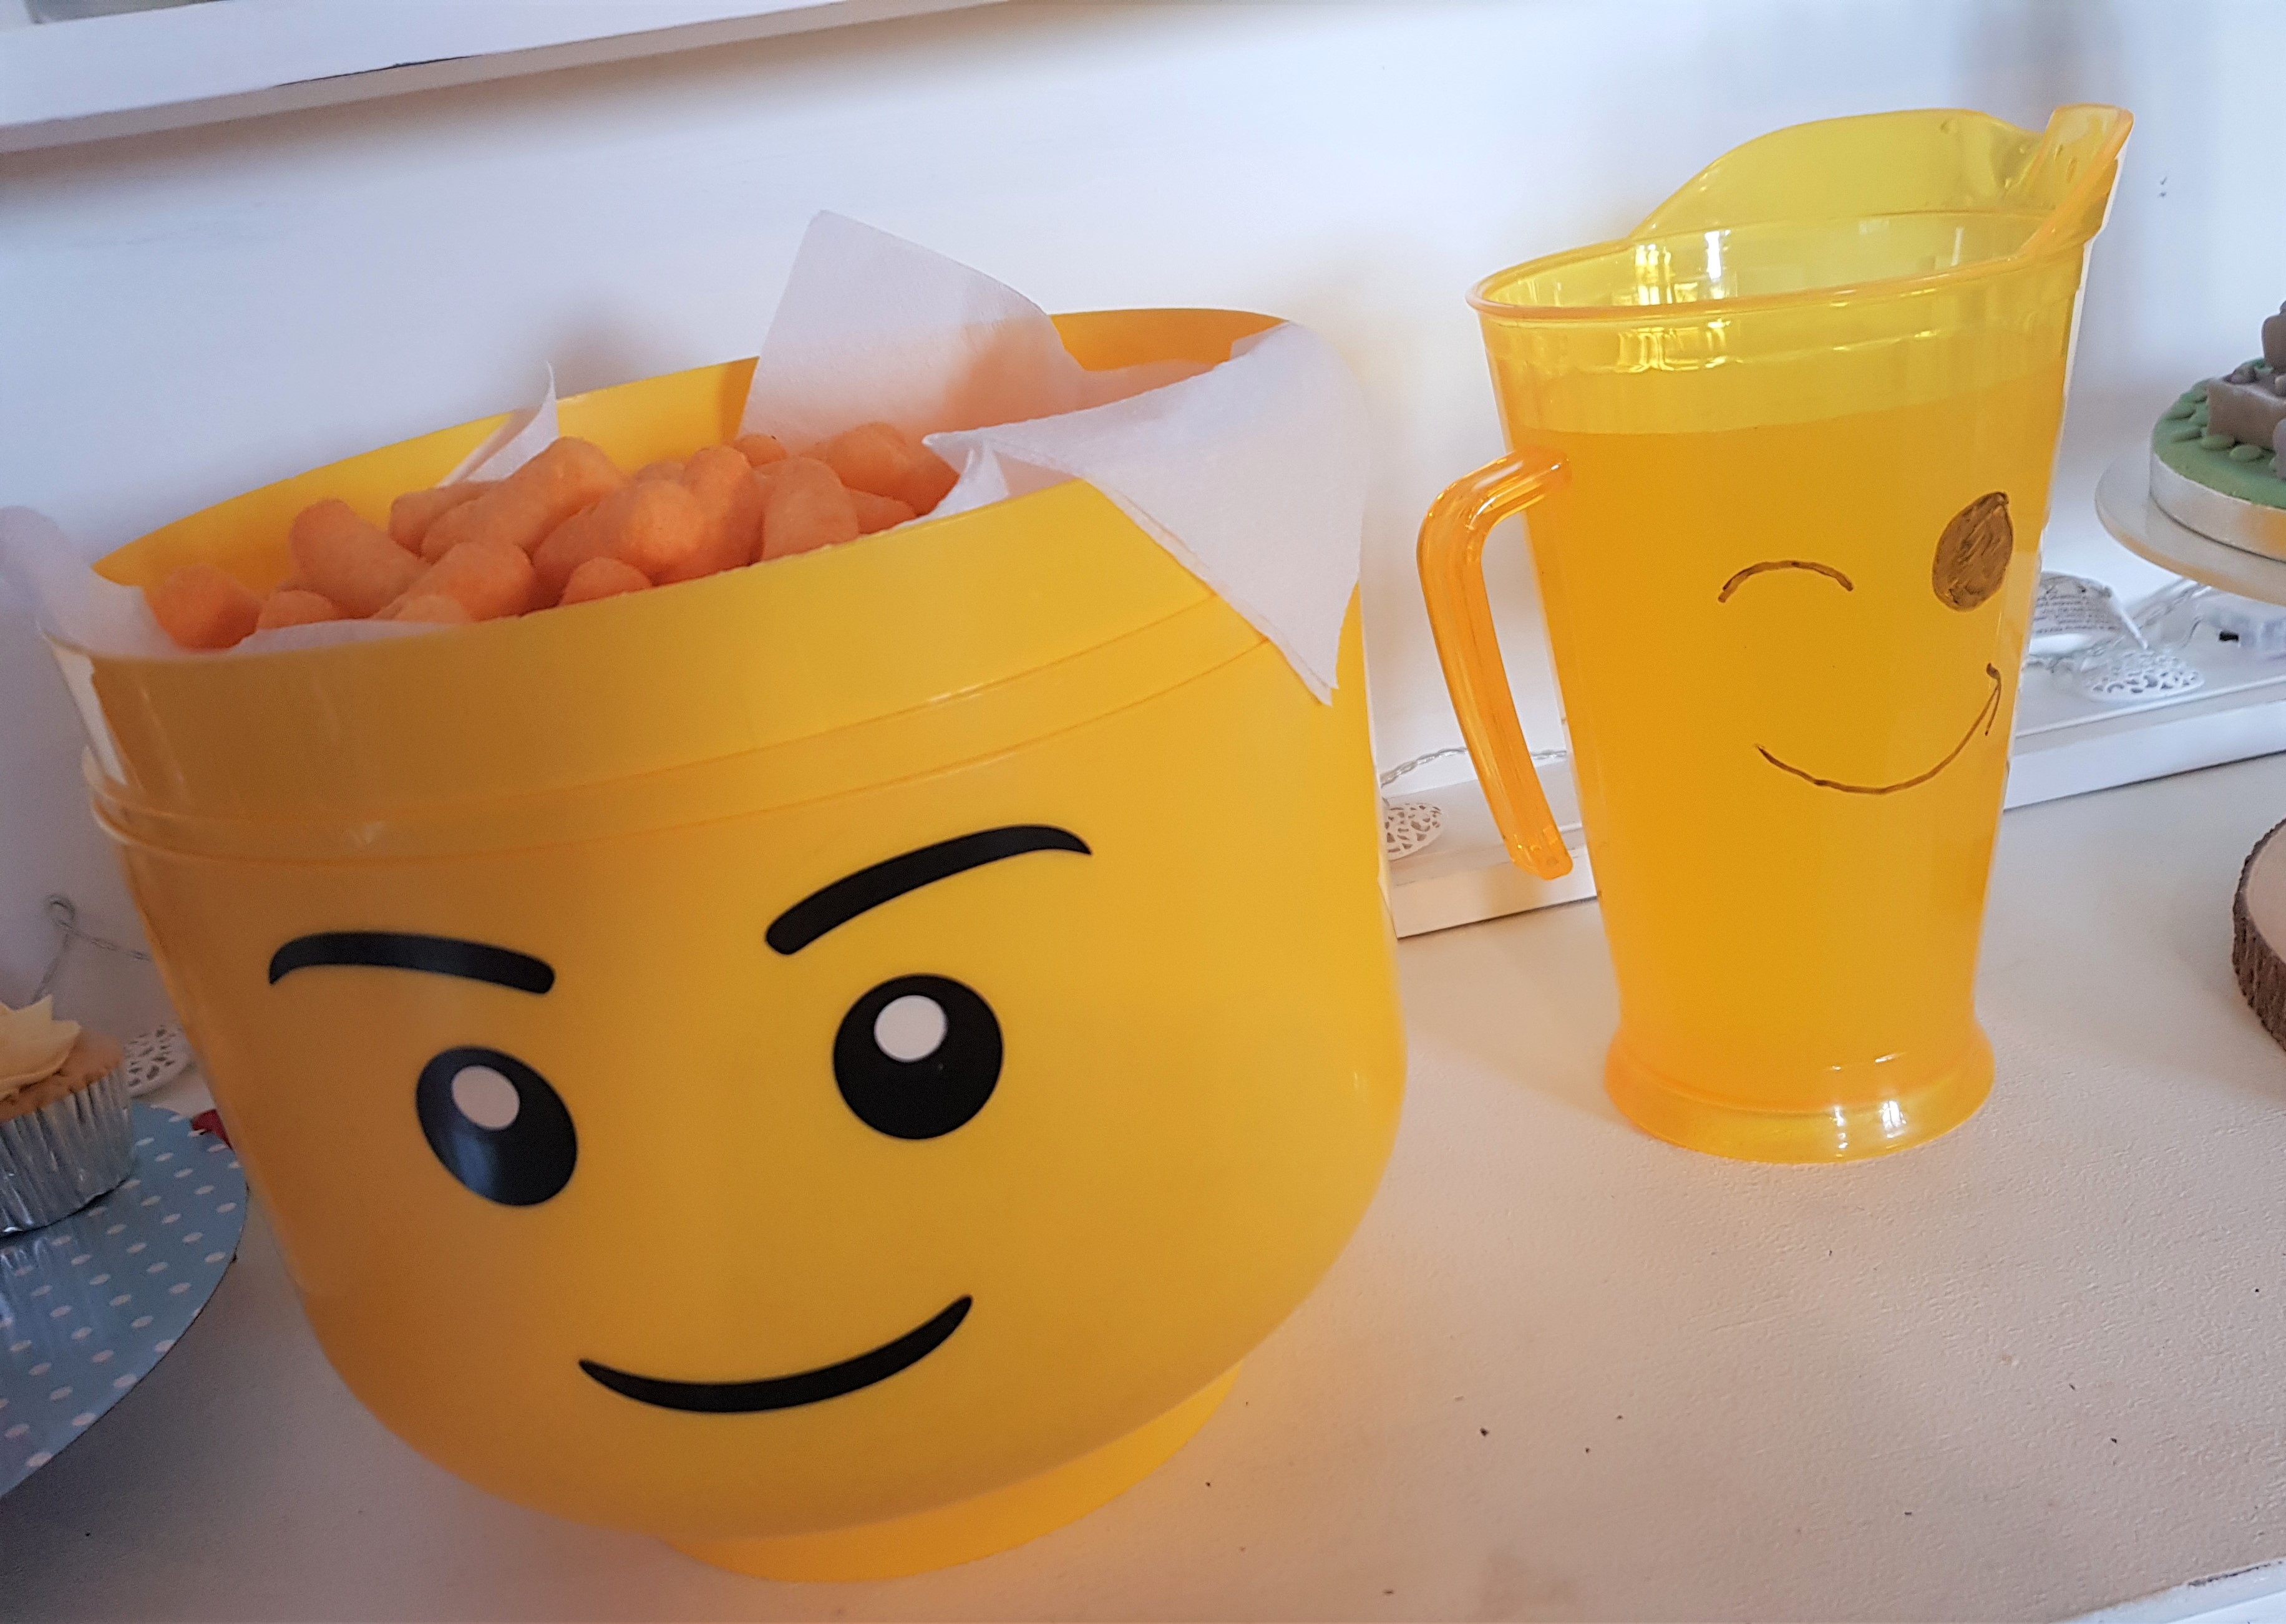 Bertie Lego head, lego face drawn on yellow jug